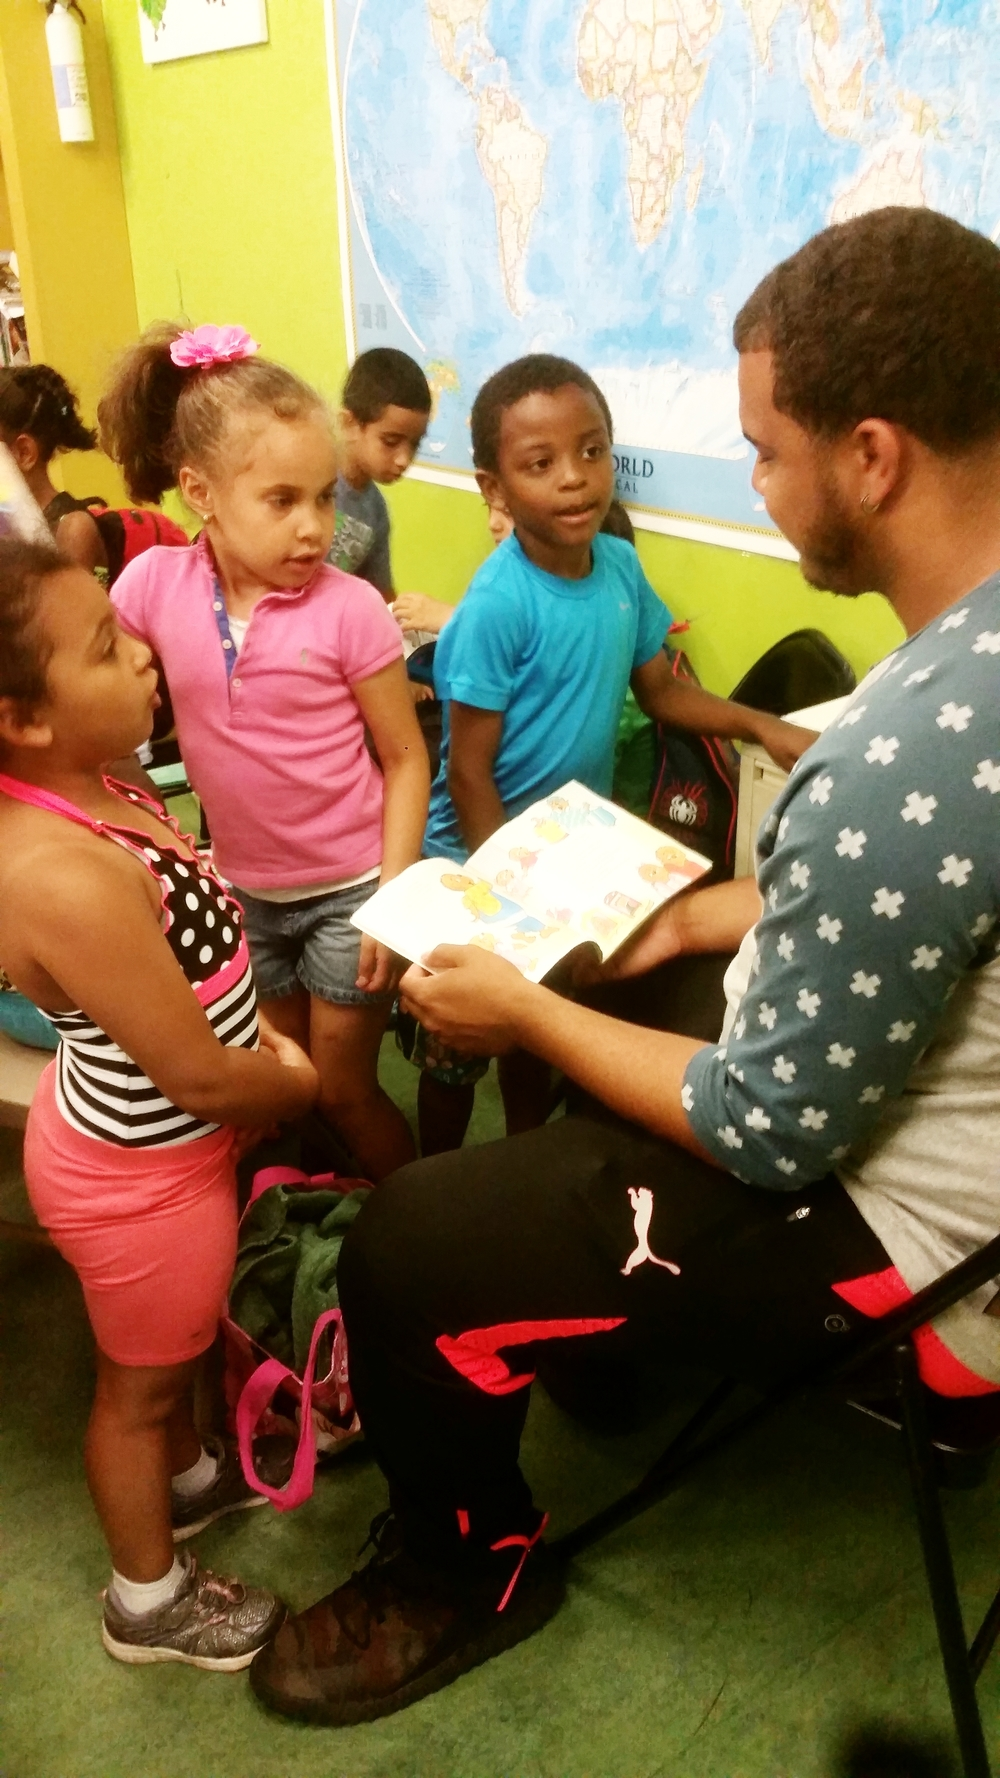 Didier stops by to say hi and volunteers to read with youngest group during DEAR time.